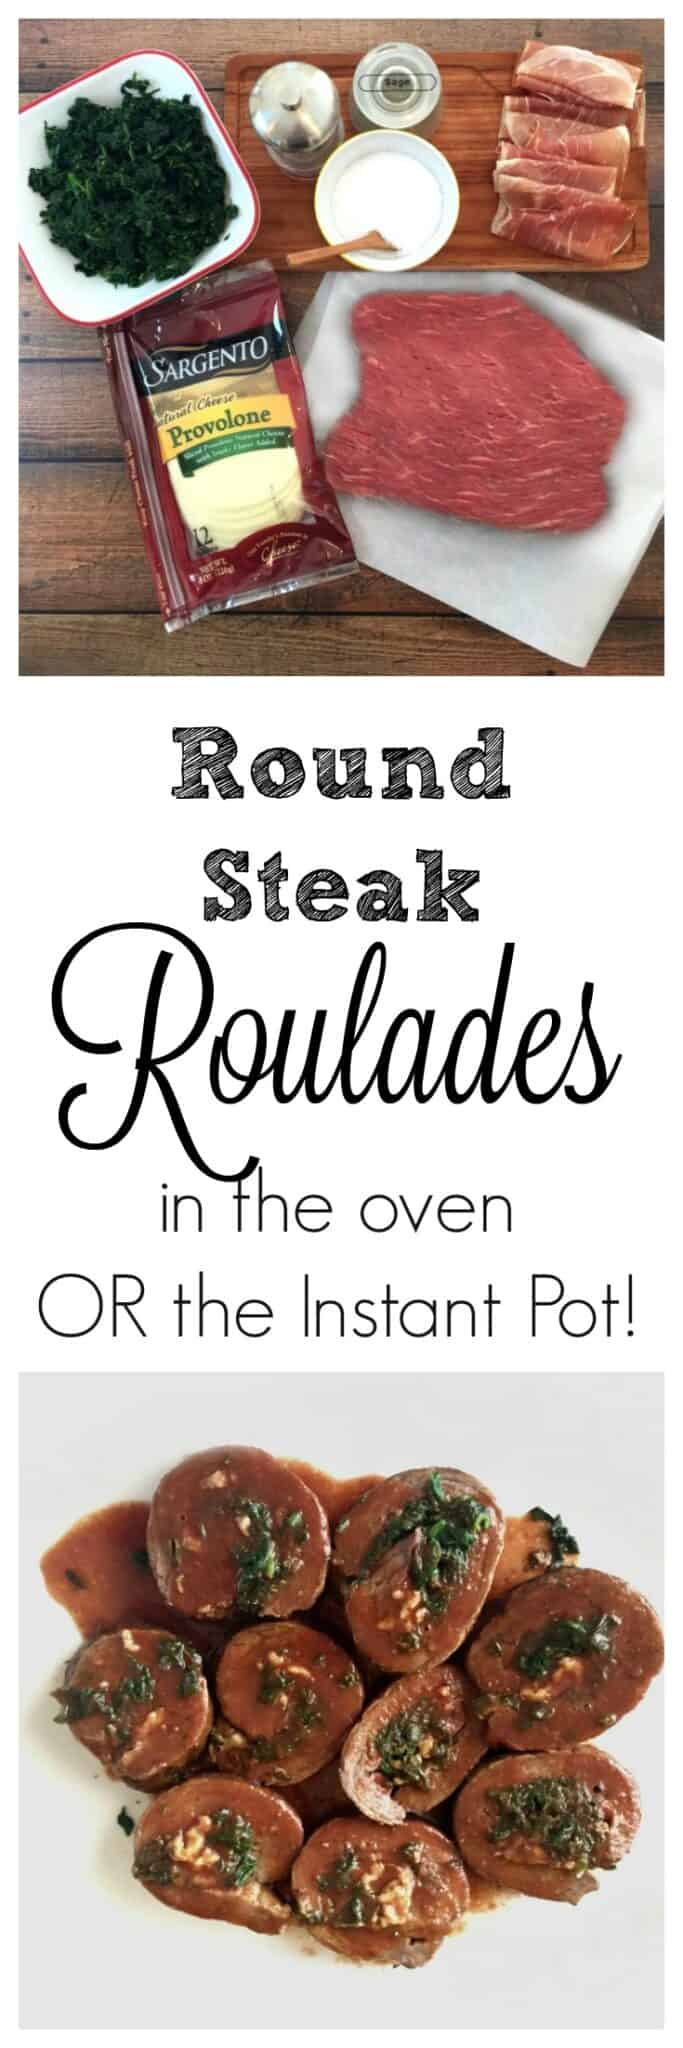 Round Steak Roulades Recipe for the oven or Instant Pot!